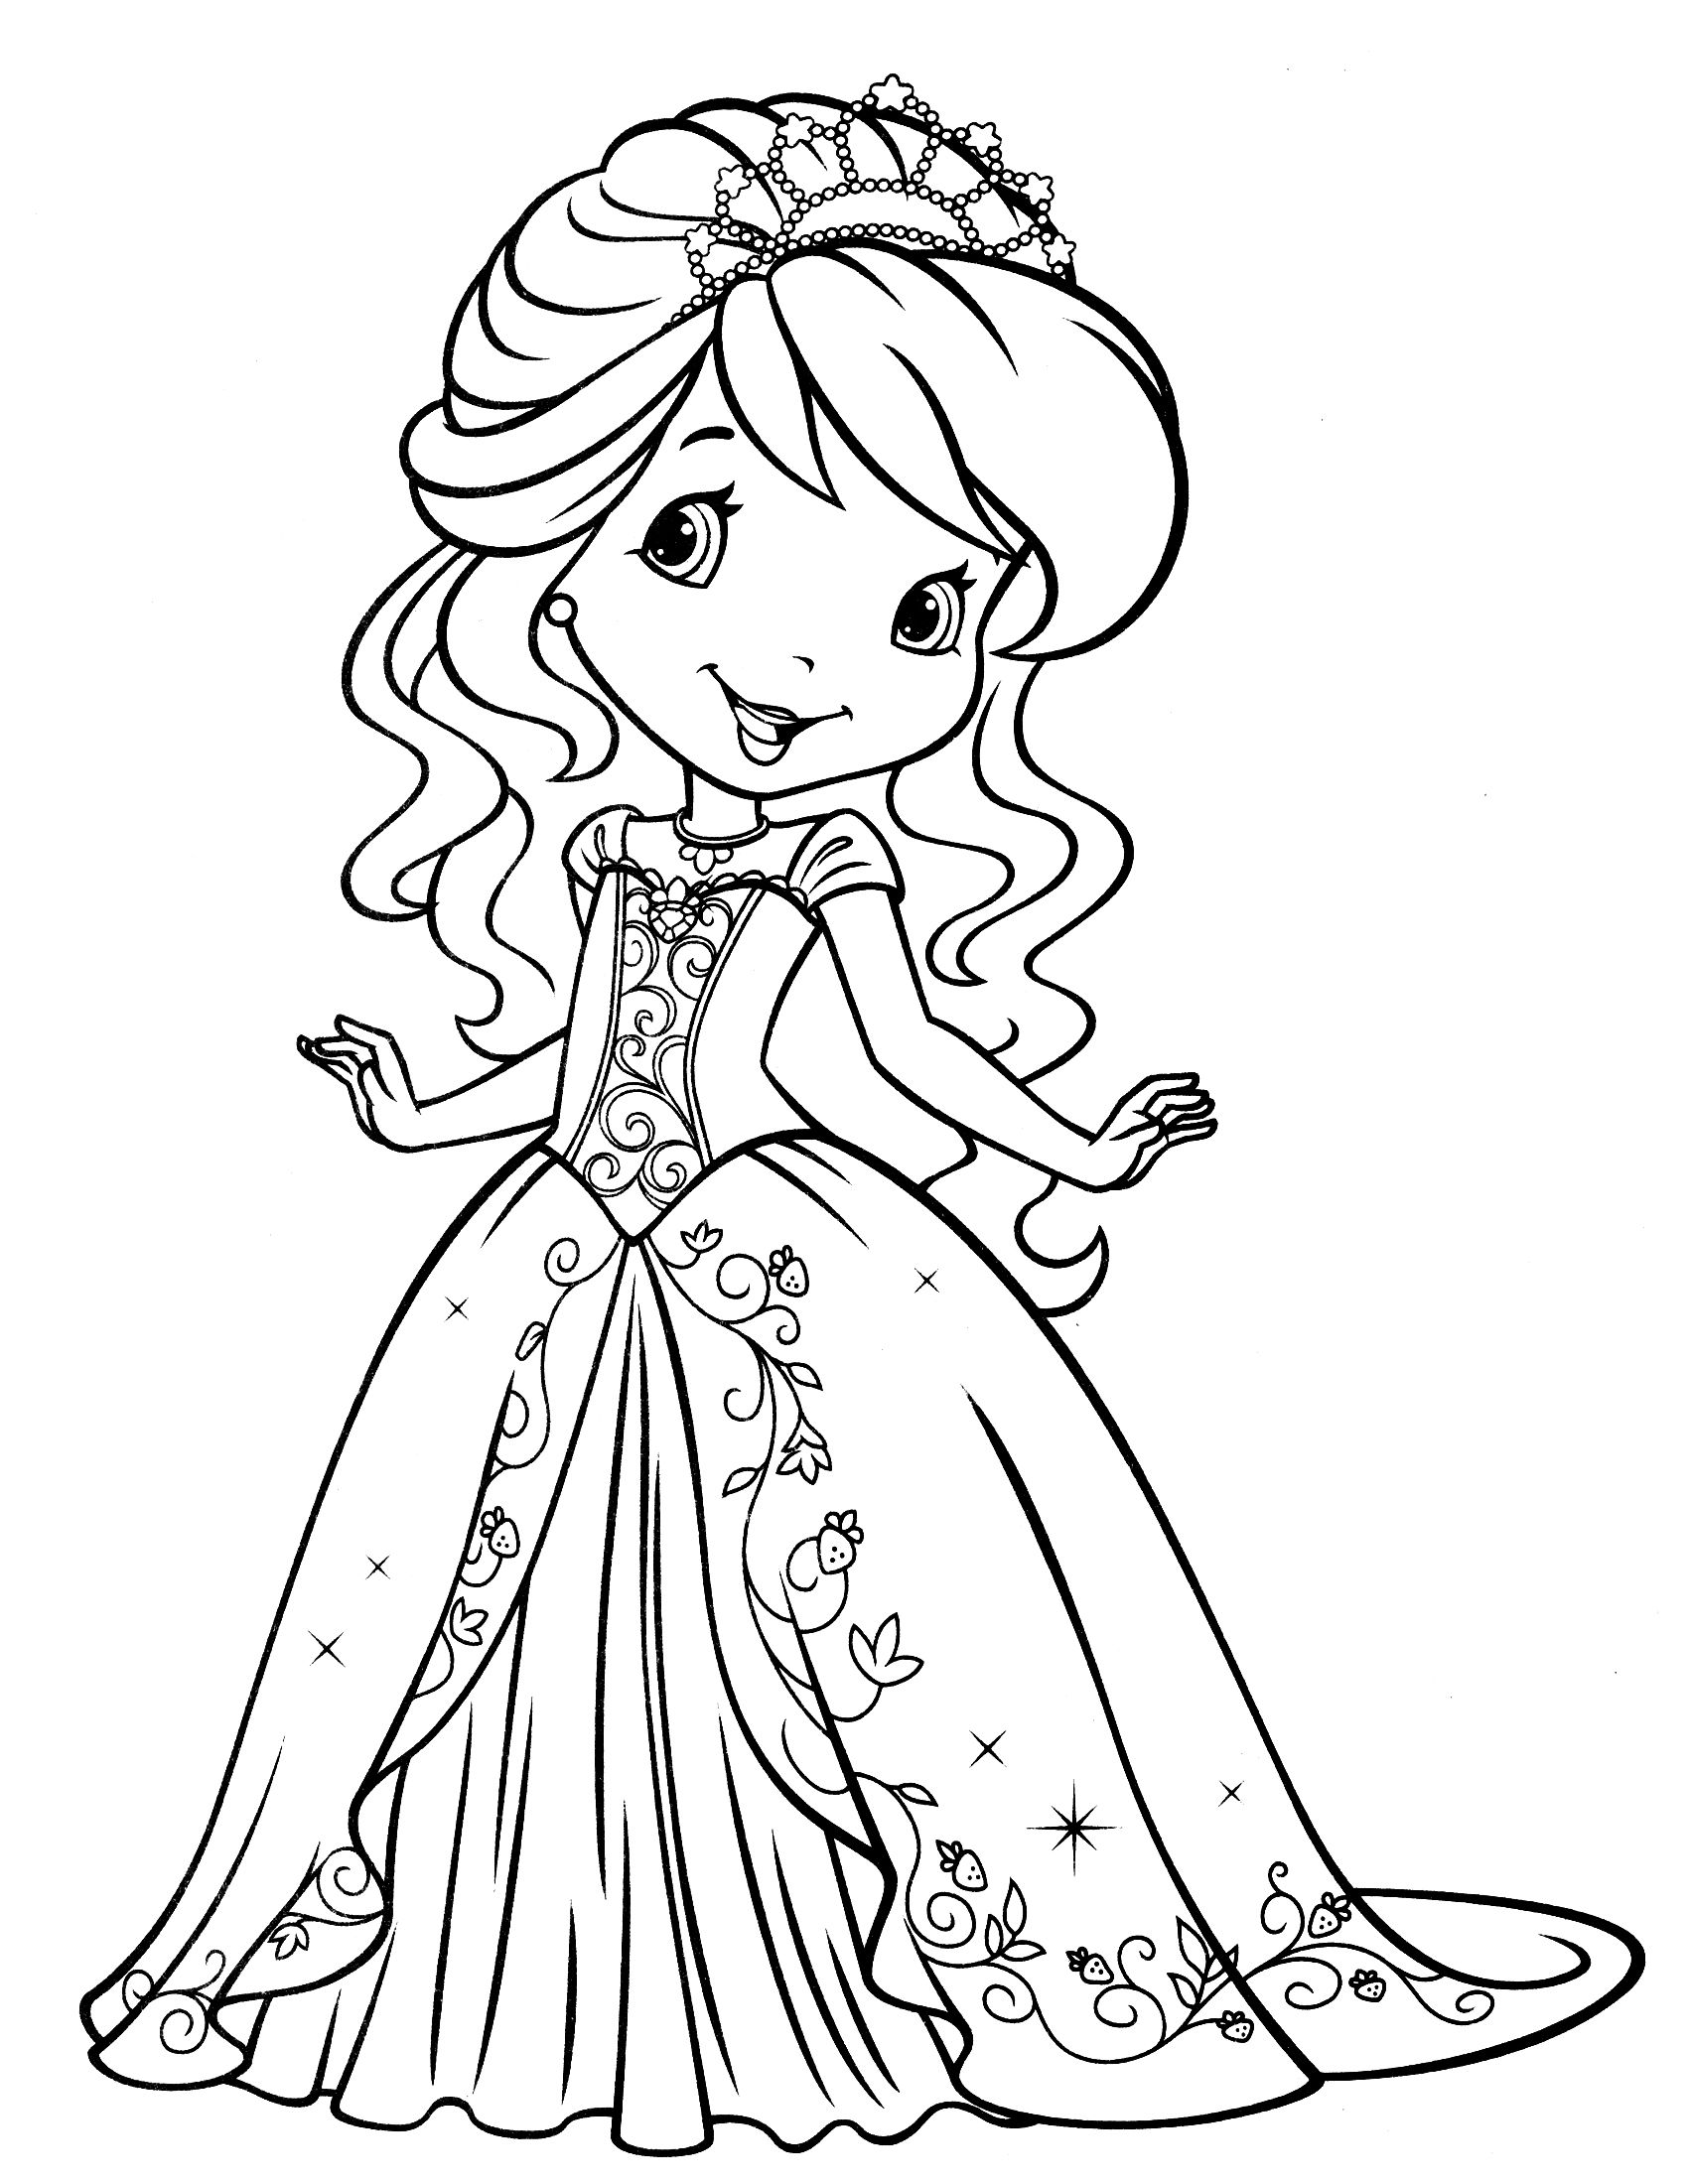 All princess coloring pages - Strawberry Shortcake Printables Strawberry Shortcake Coloring Page 12